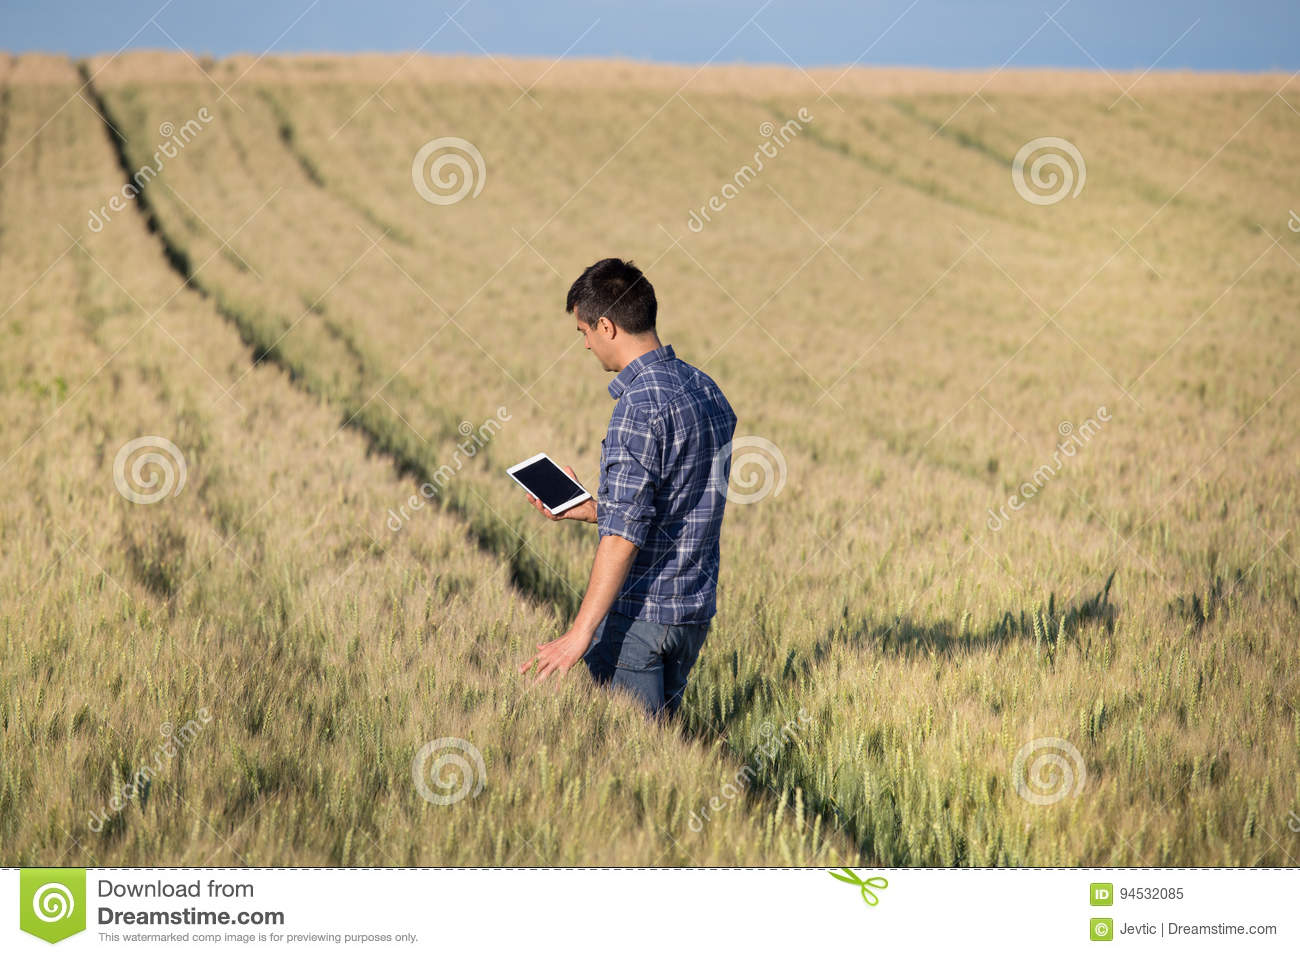 Farmer with tablet in field